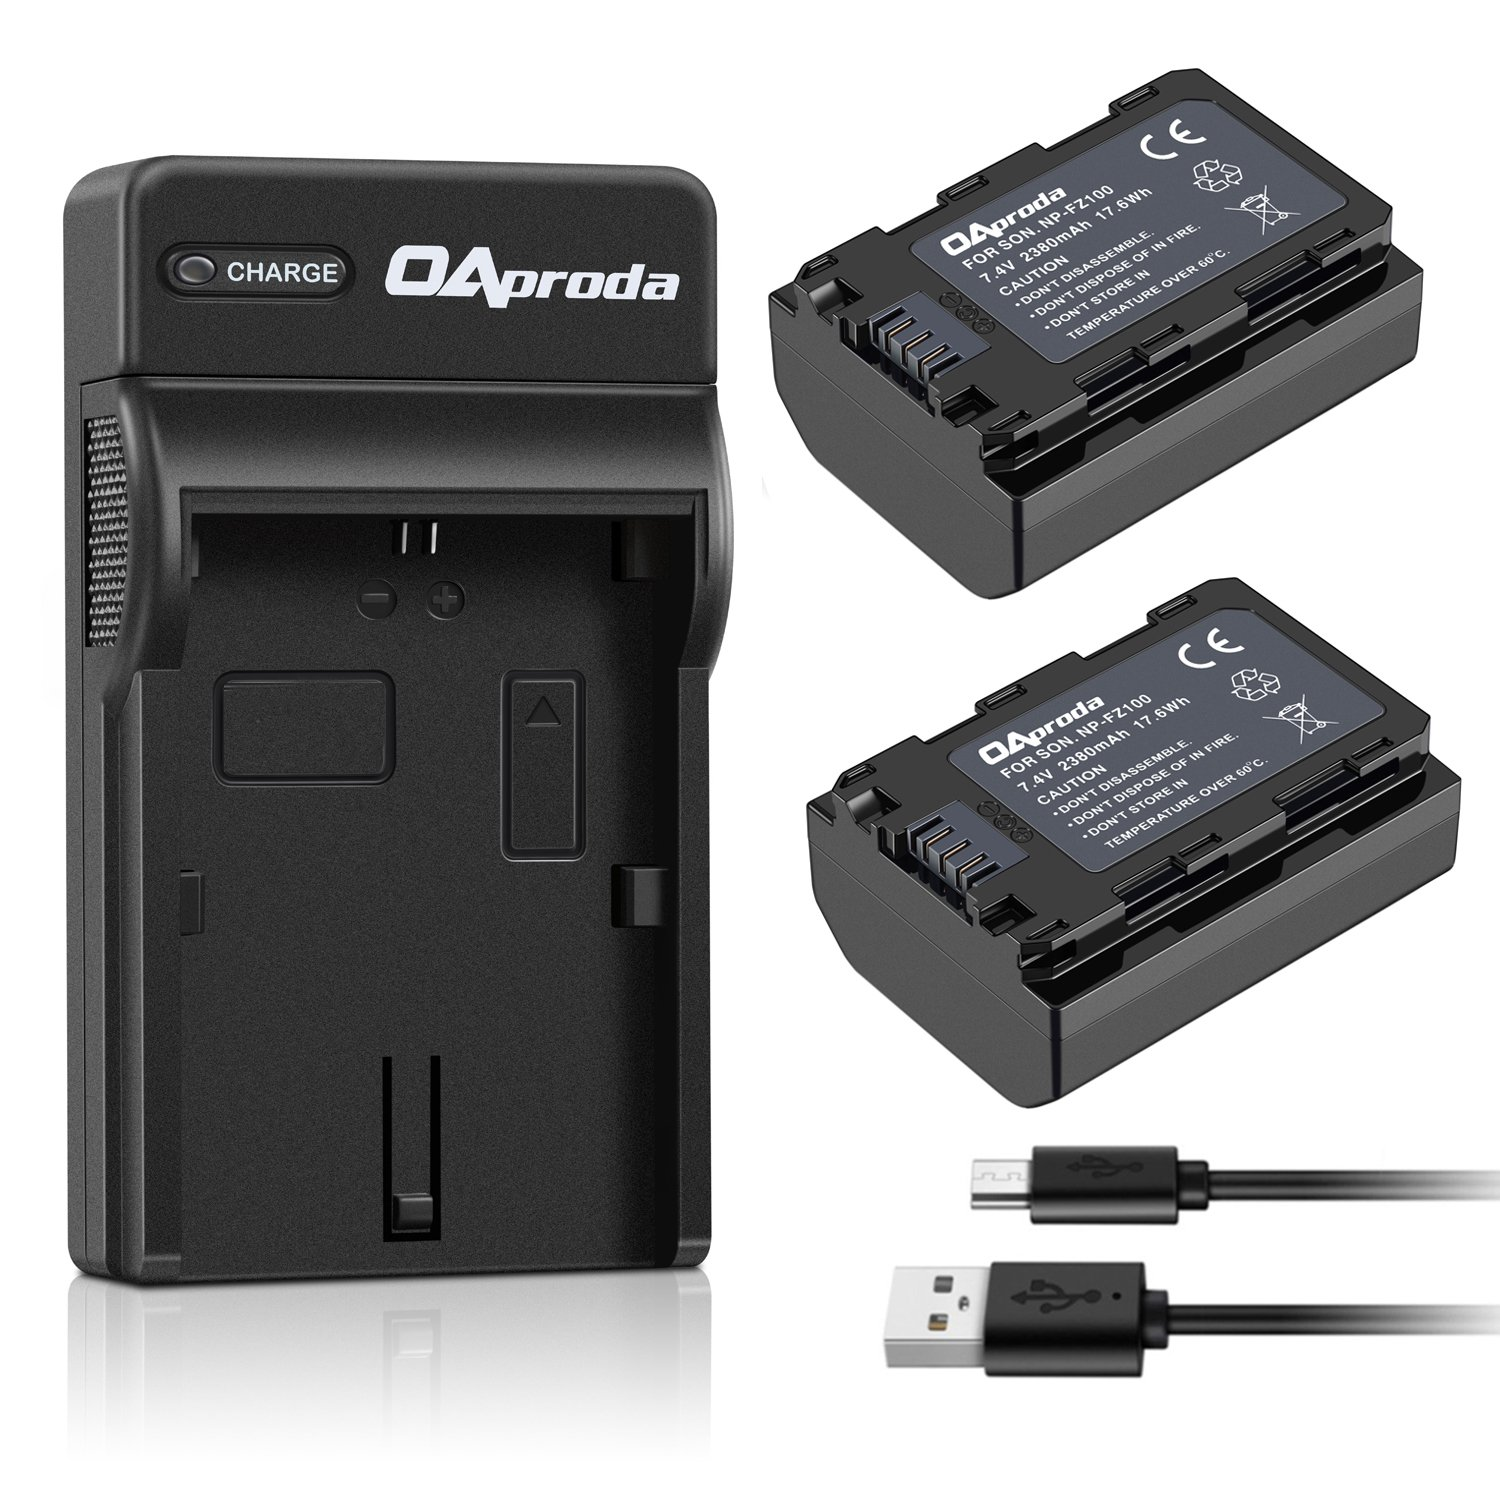 OAproda 2 Pack NP-FZ100 Battery 2380mAh and Rapid USB Charger for Sony NP-FZ100, BC-QZ1 and Sony A9, A7 III, A7R III, A7R3 Digital Cameras (Fully Decoded, 100% Compatible with Original) by OAproda